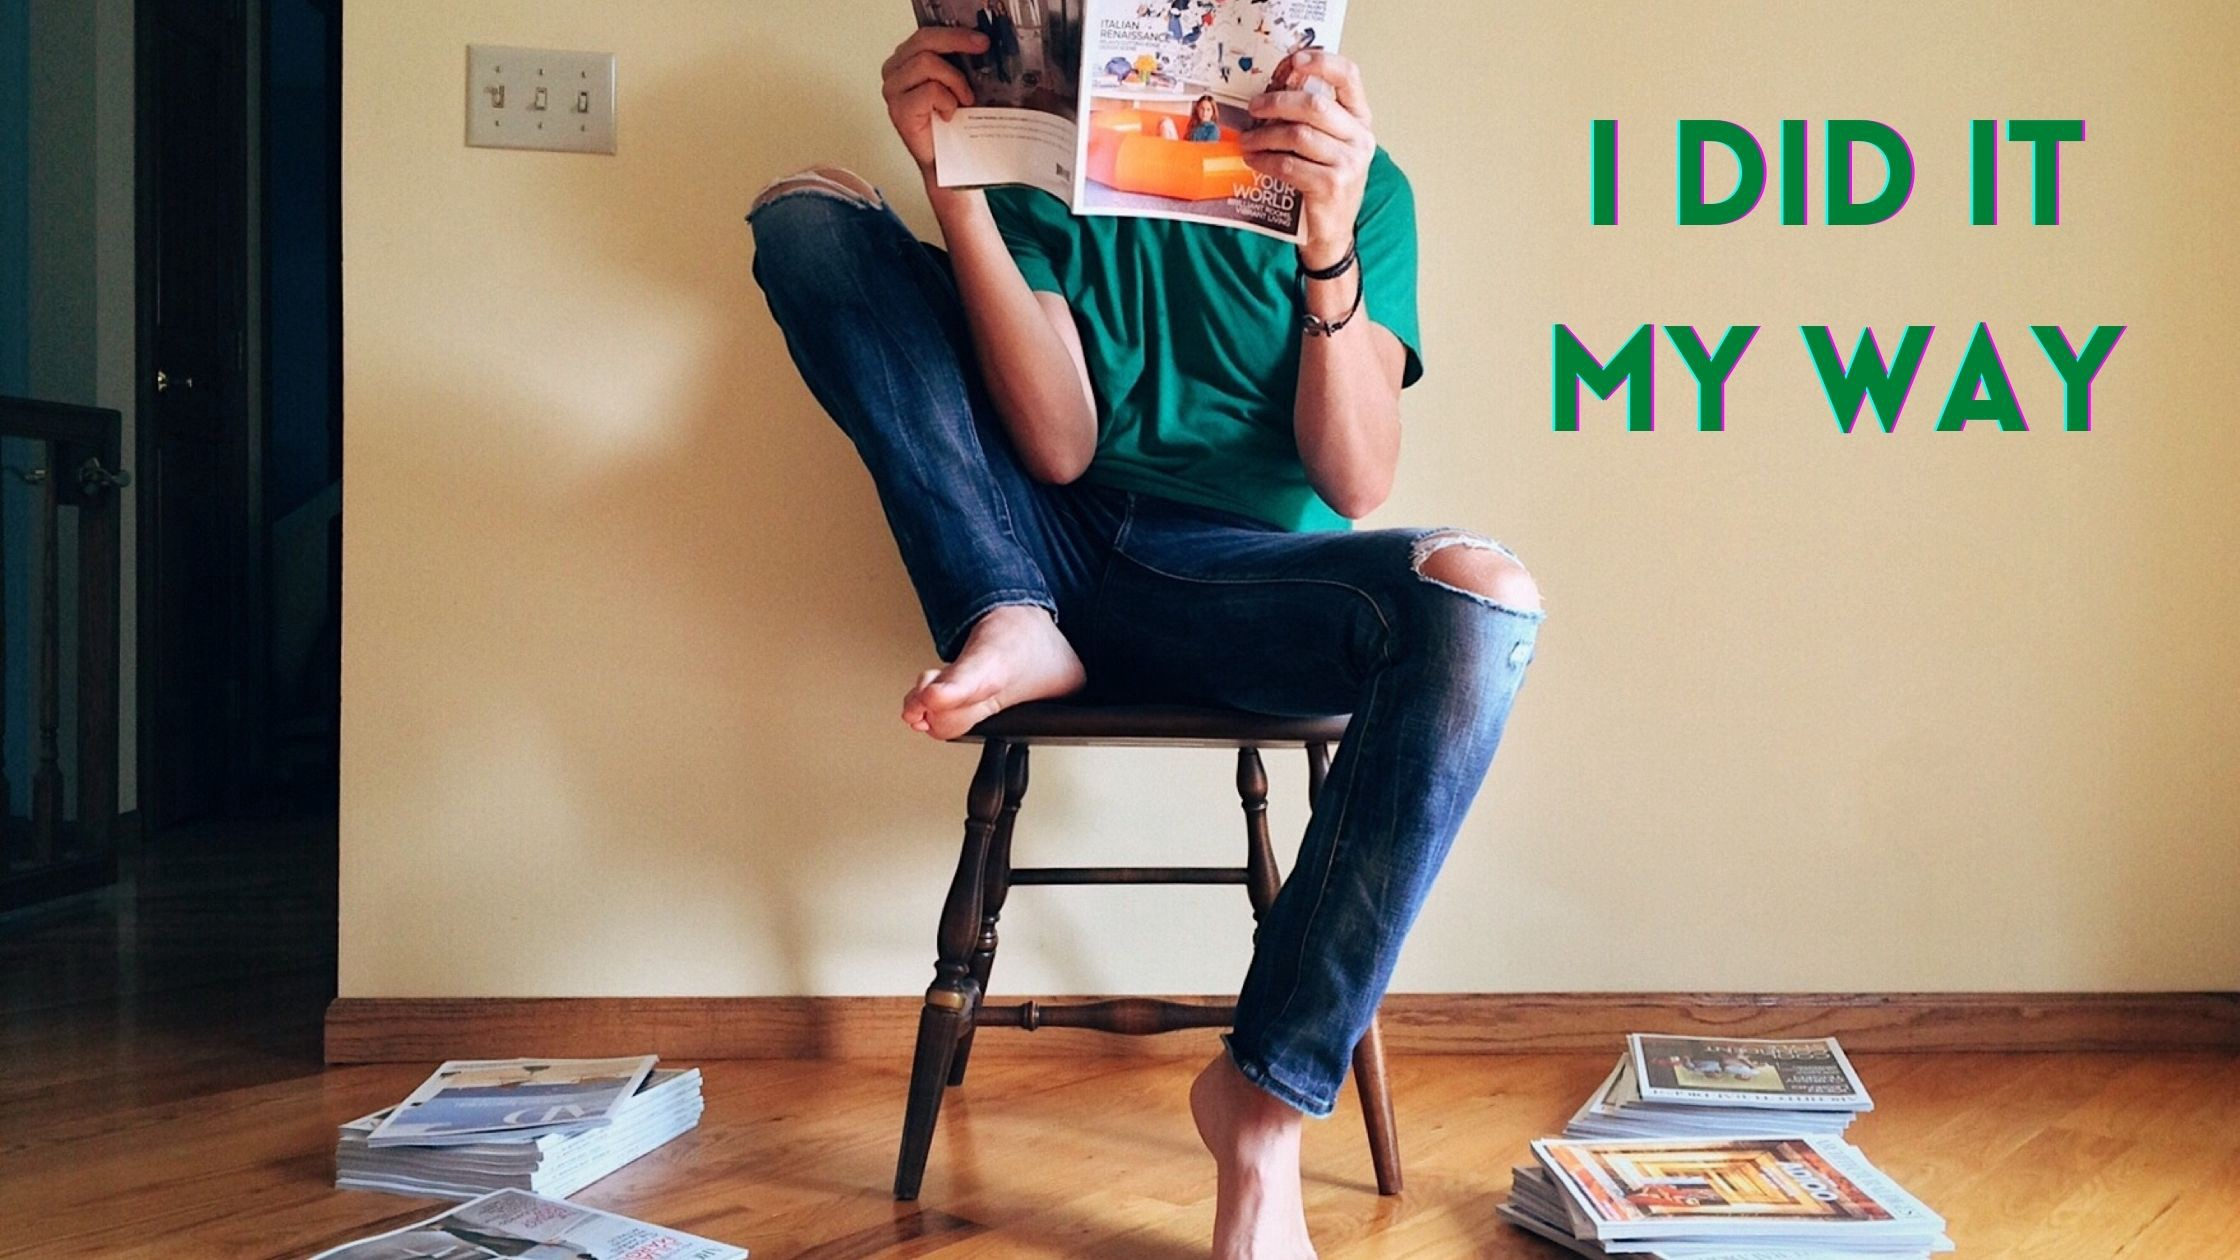 """man, on stool, reading a print publication, with more publications on the floor; text """"I DID IT MY WAY"""" to his left"""